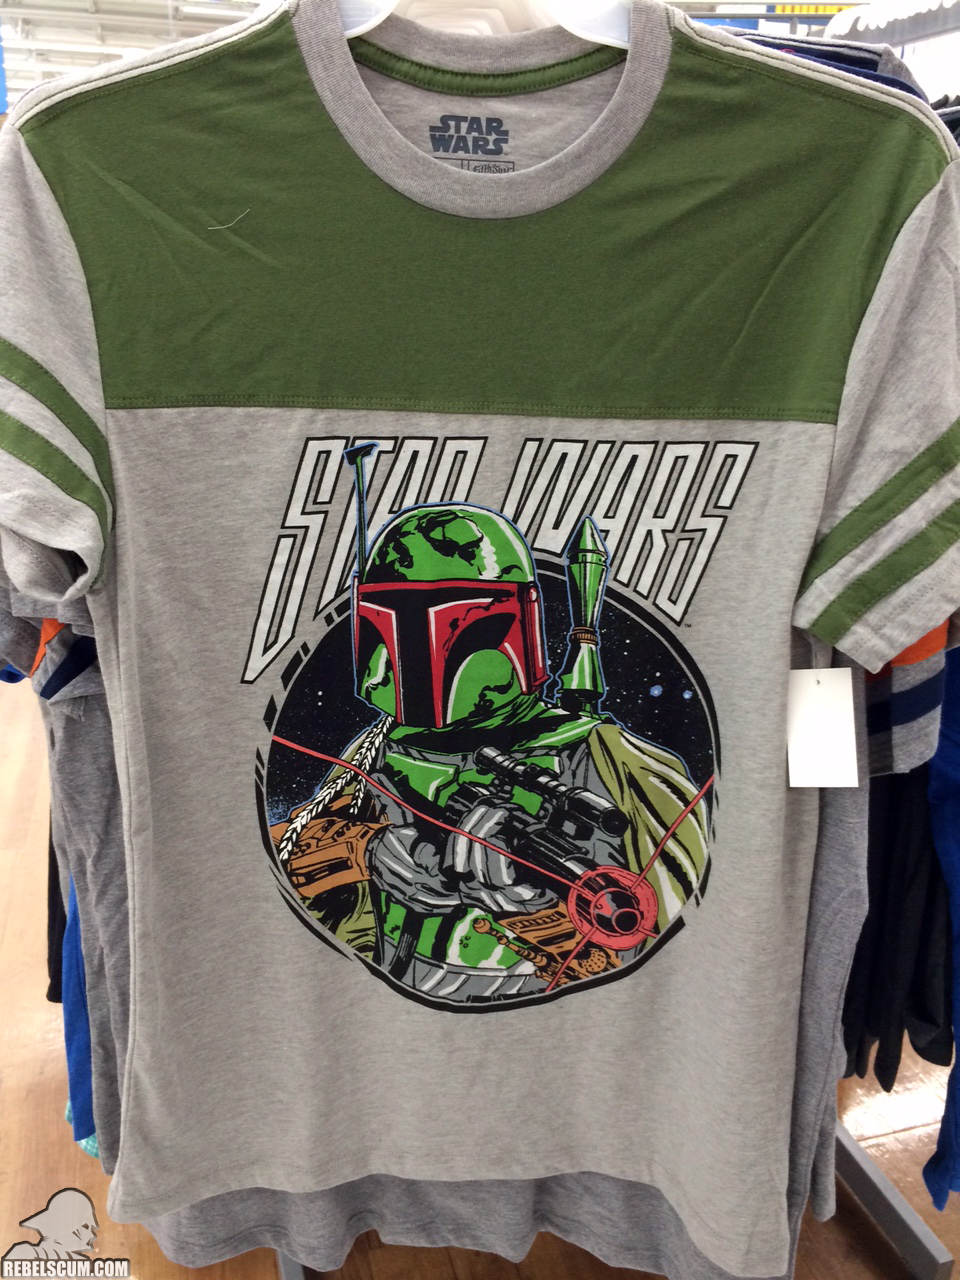 Black t shirt at walmart -  Travel Mug Black Series Scout Trooper With Speeder Bike 50 Off At Tru And The Below T Shirt At Wal Mart Which Also Where I Got The Kylo Ren Shirt